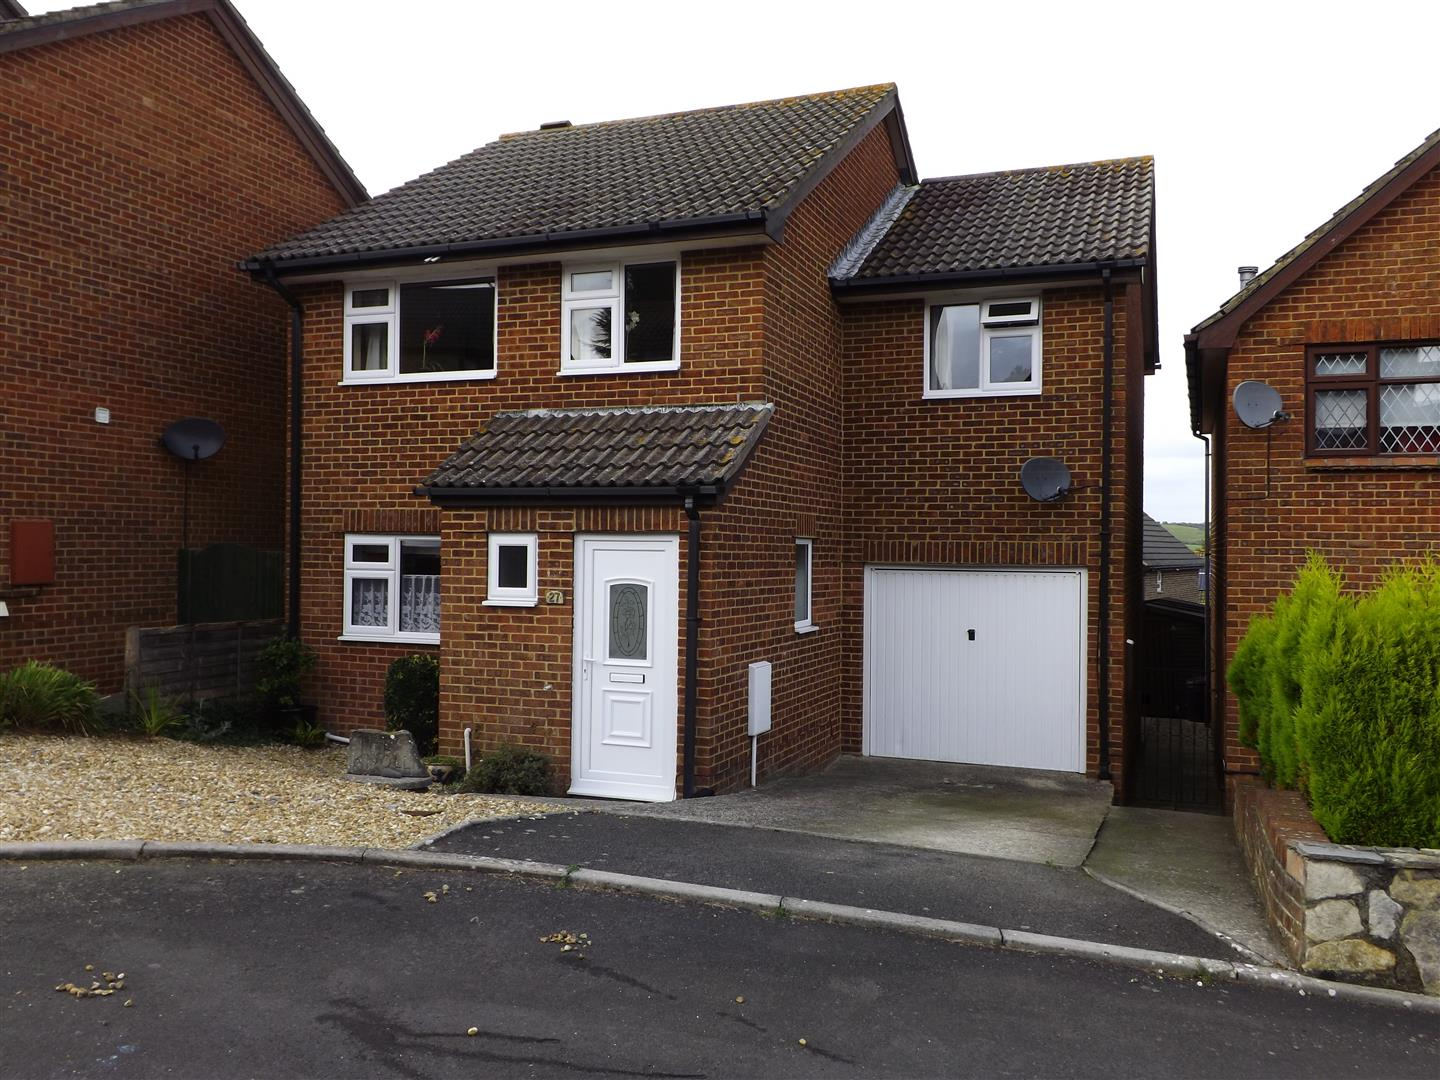 4 Bedrooms Detached House for sale in Sandbourne Close, Swanage